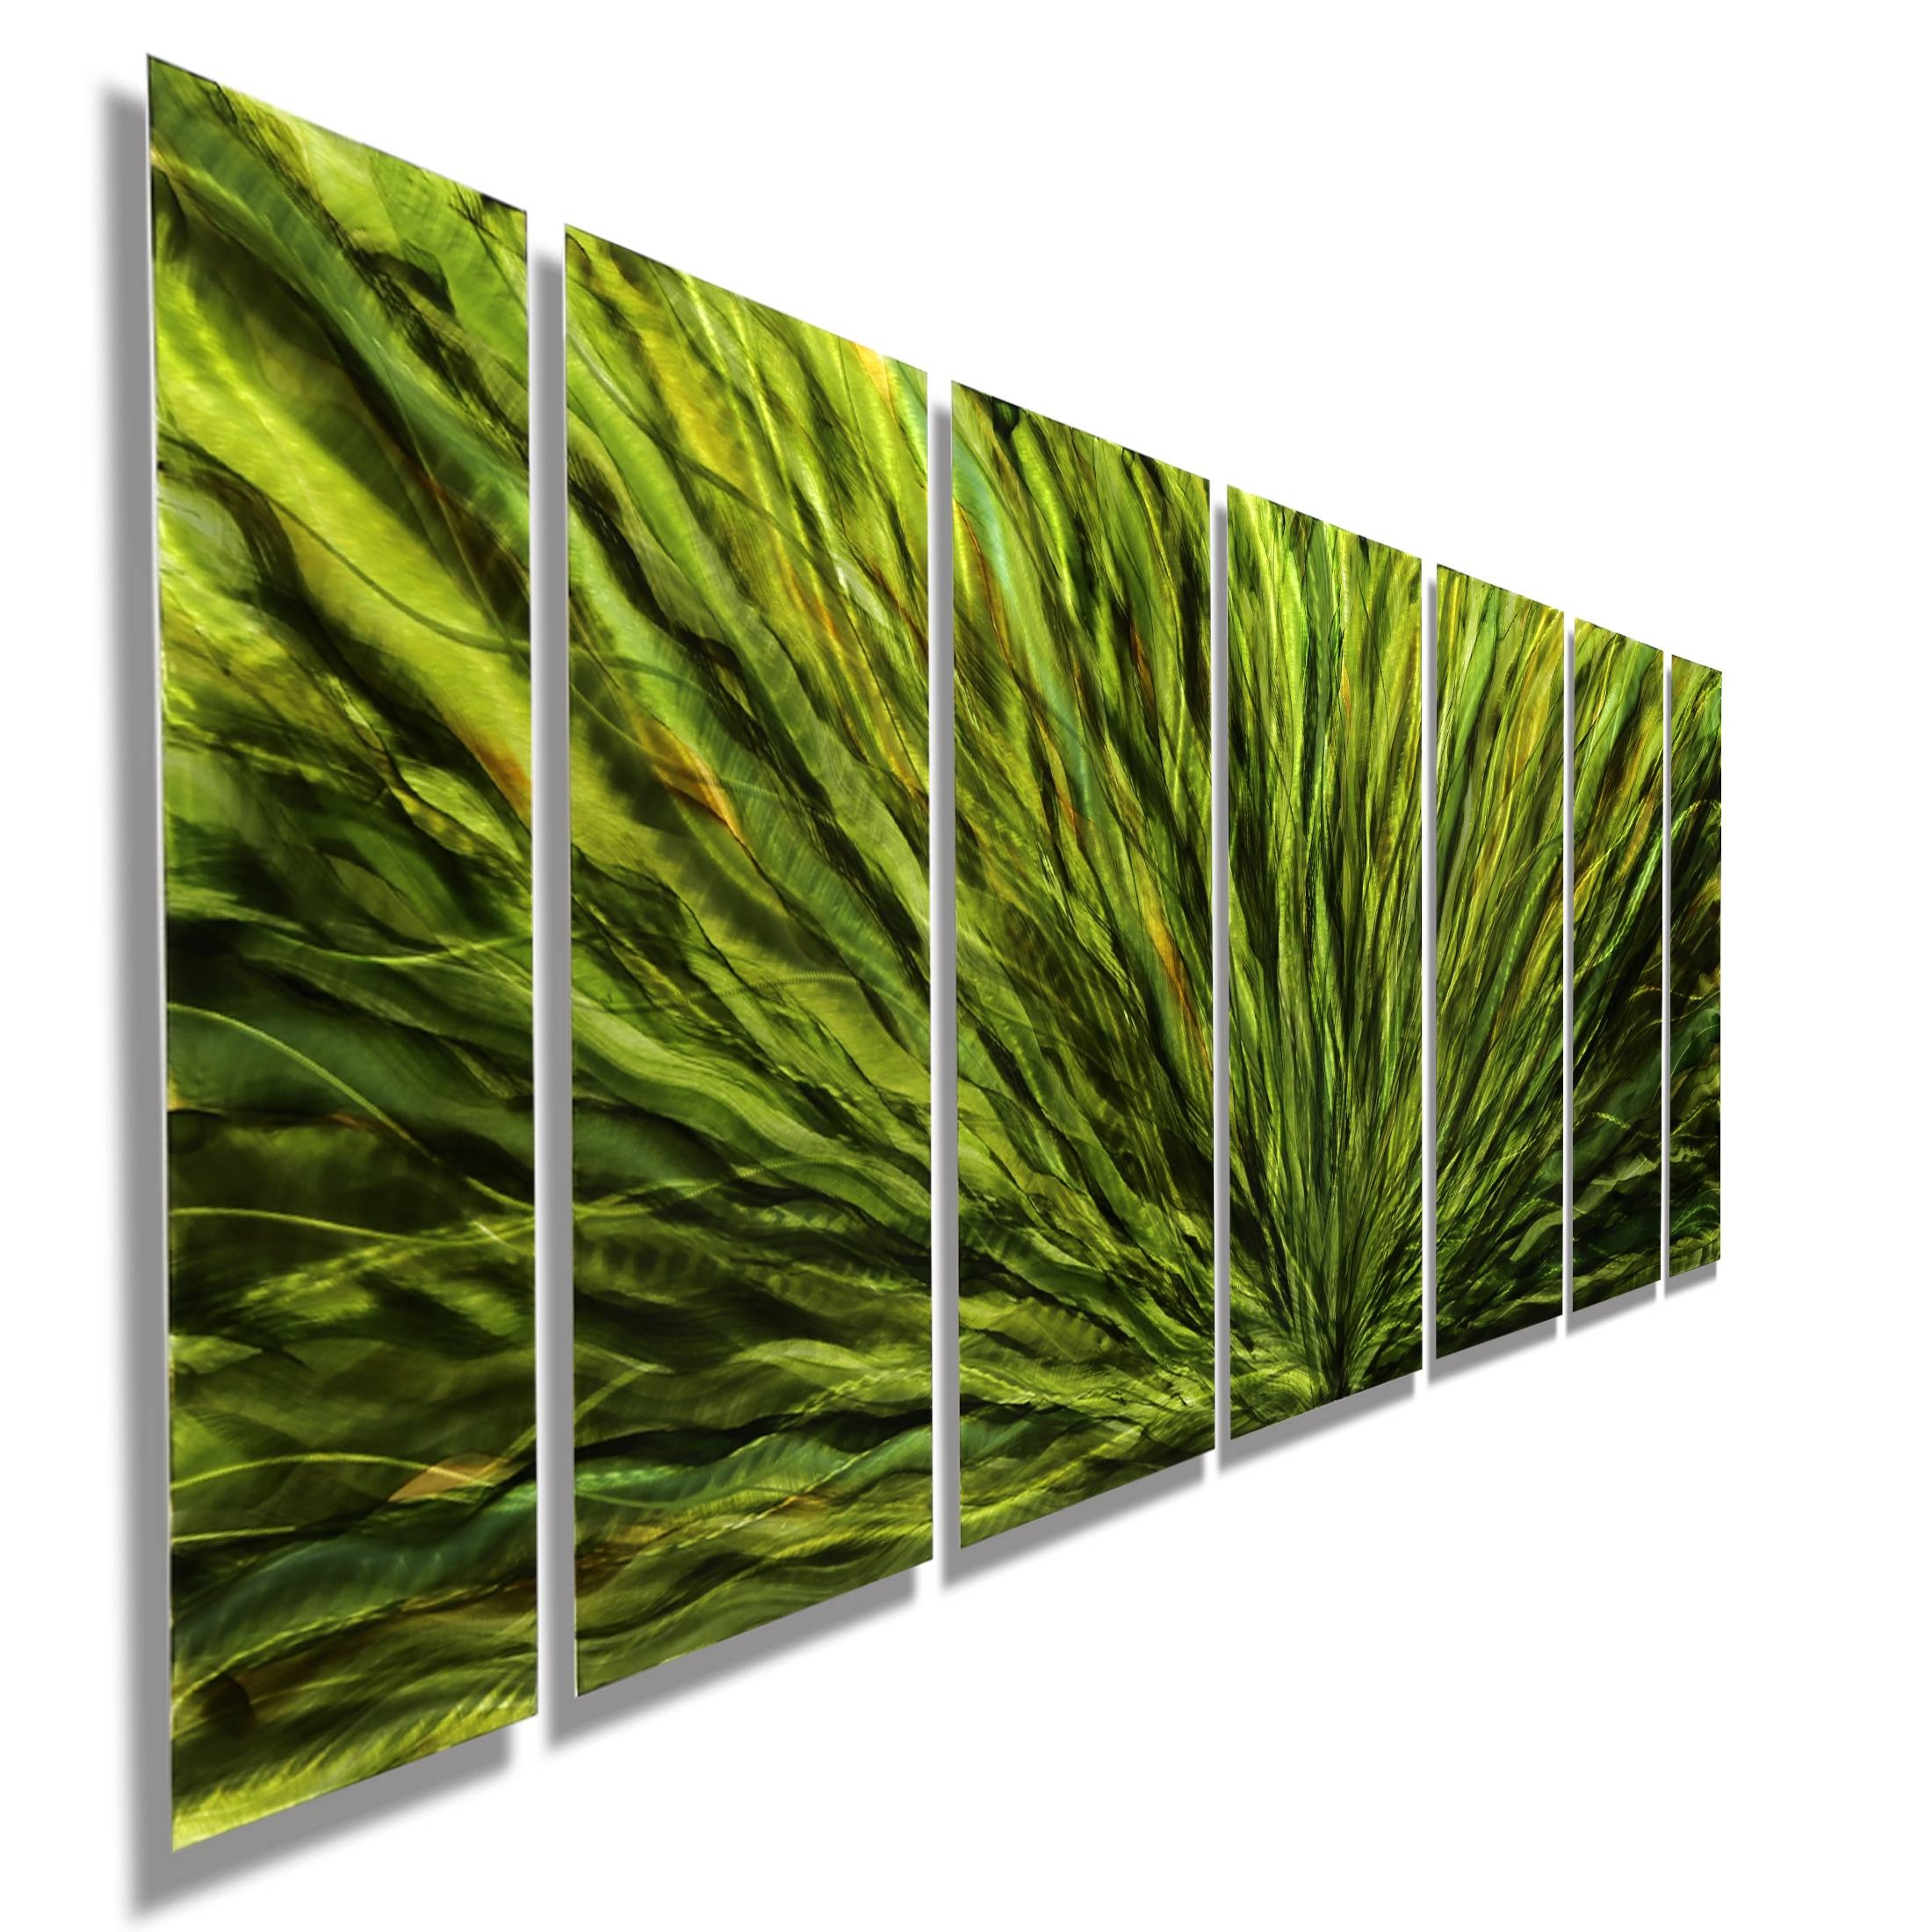 Emerald Plumage – Vivid Green Hand Painted, 7 Piece Metal Wall Art Inside Recent Green Metal Wall Art (View 9 of 20)